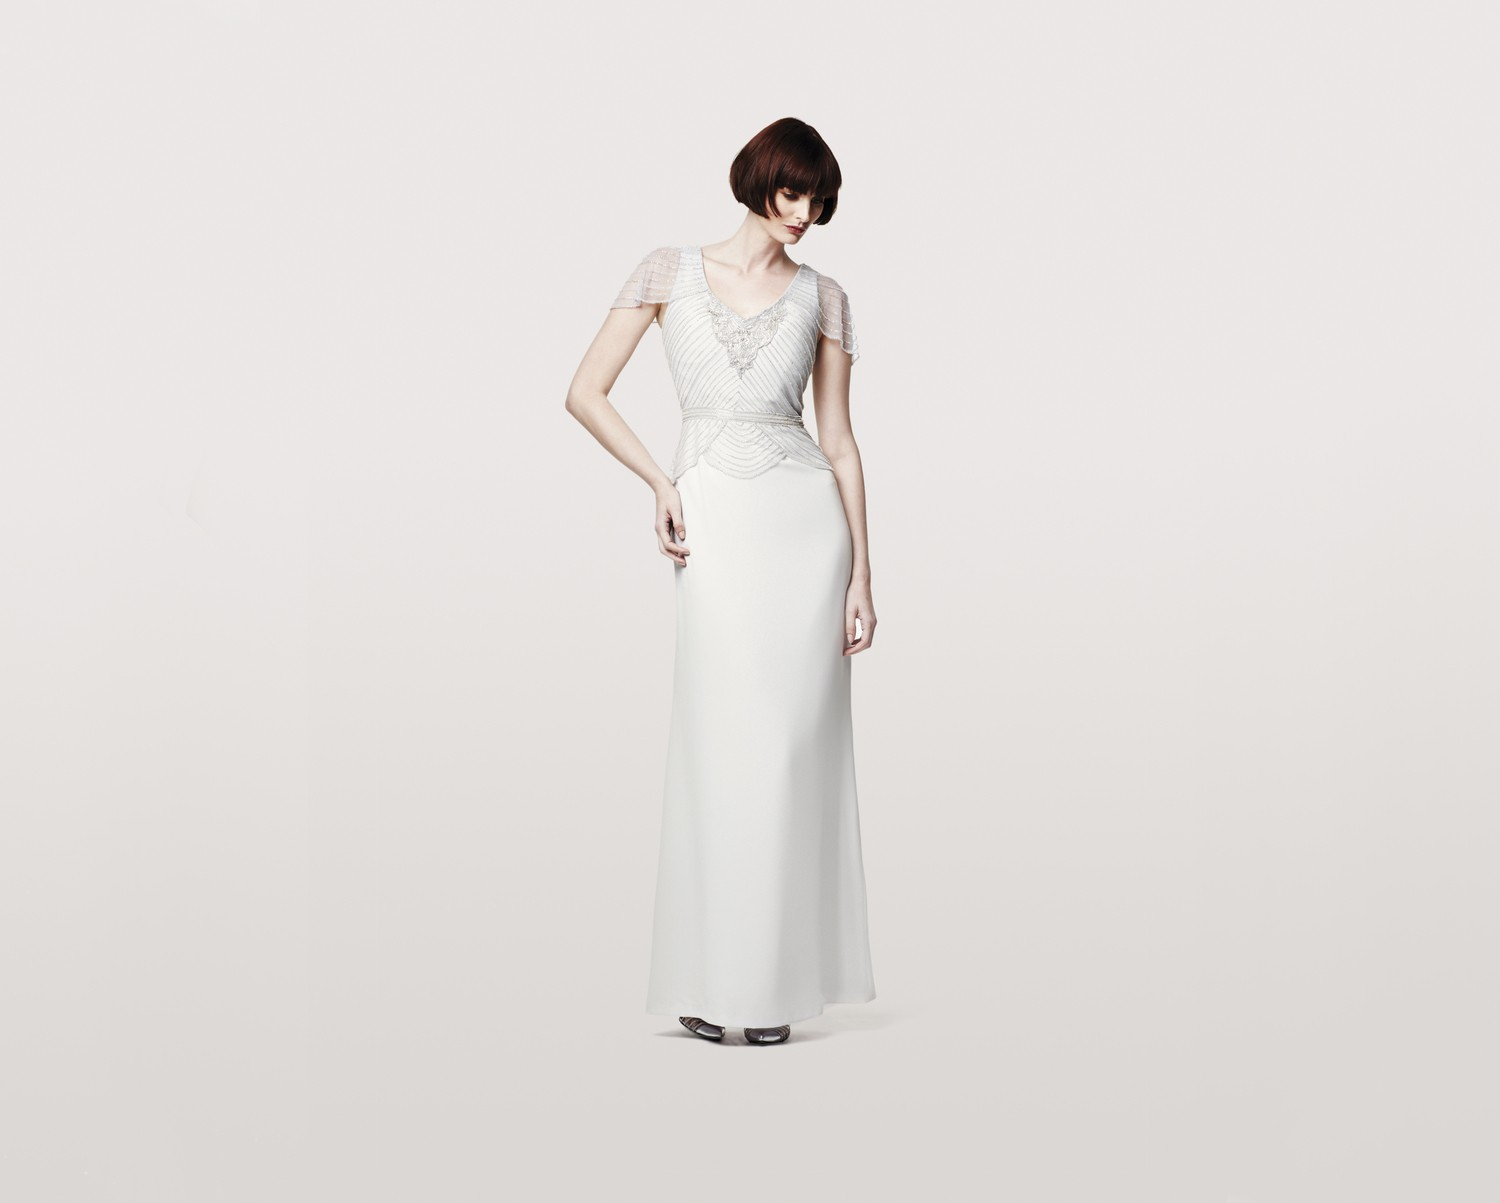 A Line Wedding Gown With Sleeves: Daymor Couture 151 Dress V-Neckline Cap Sleeves A-line